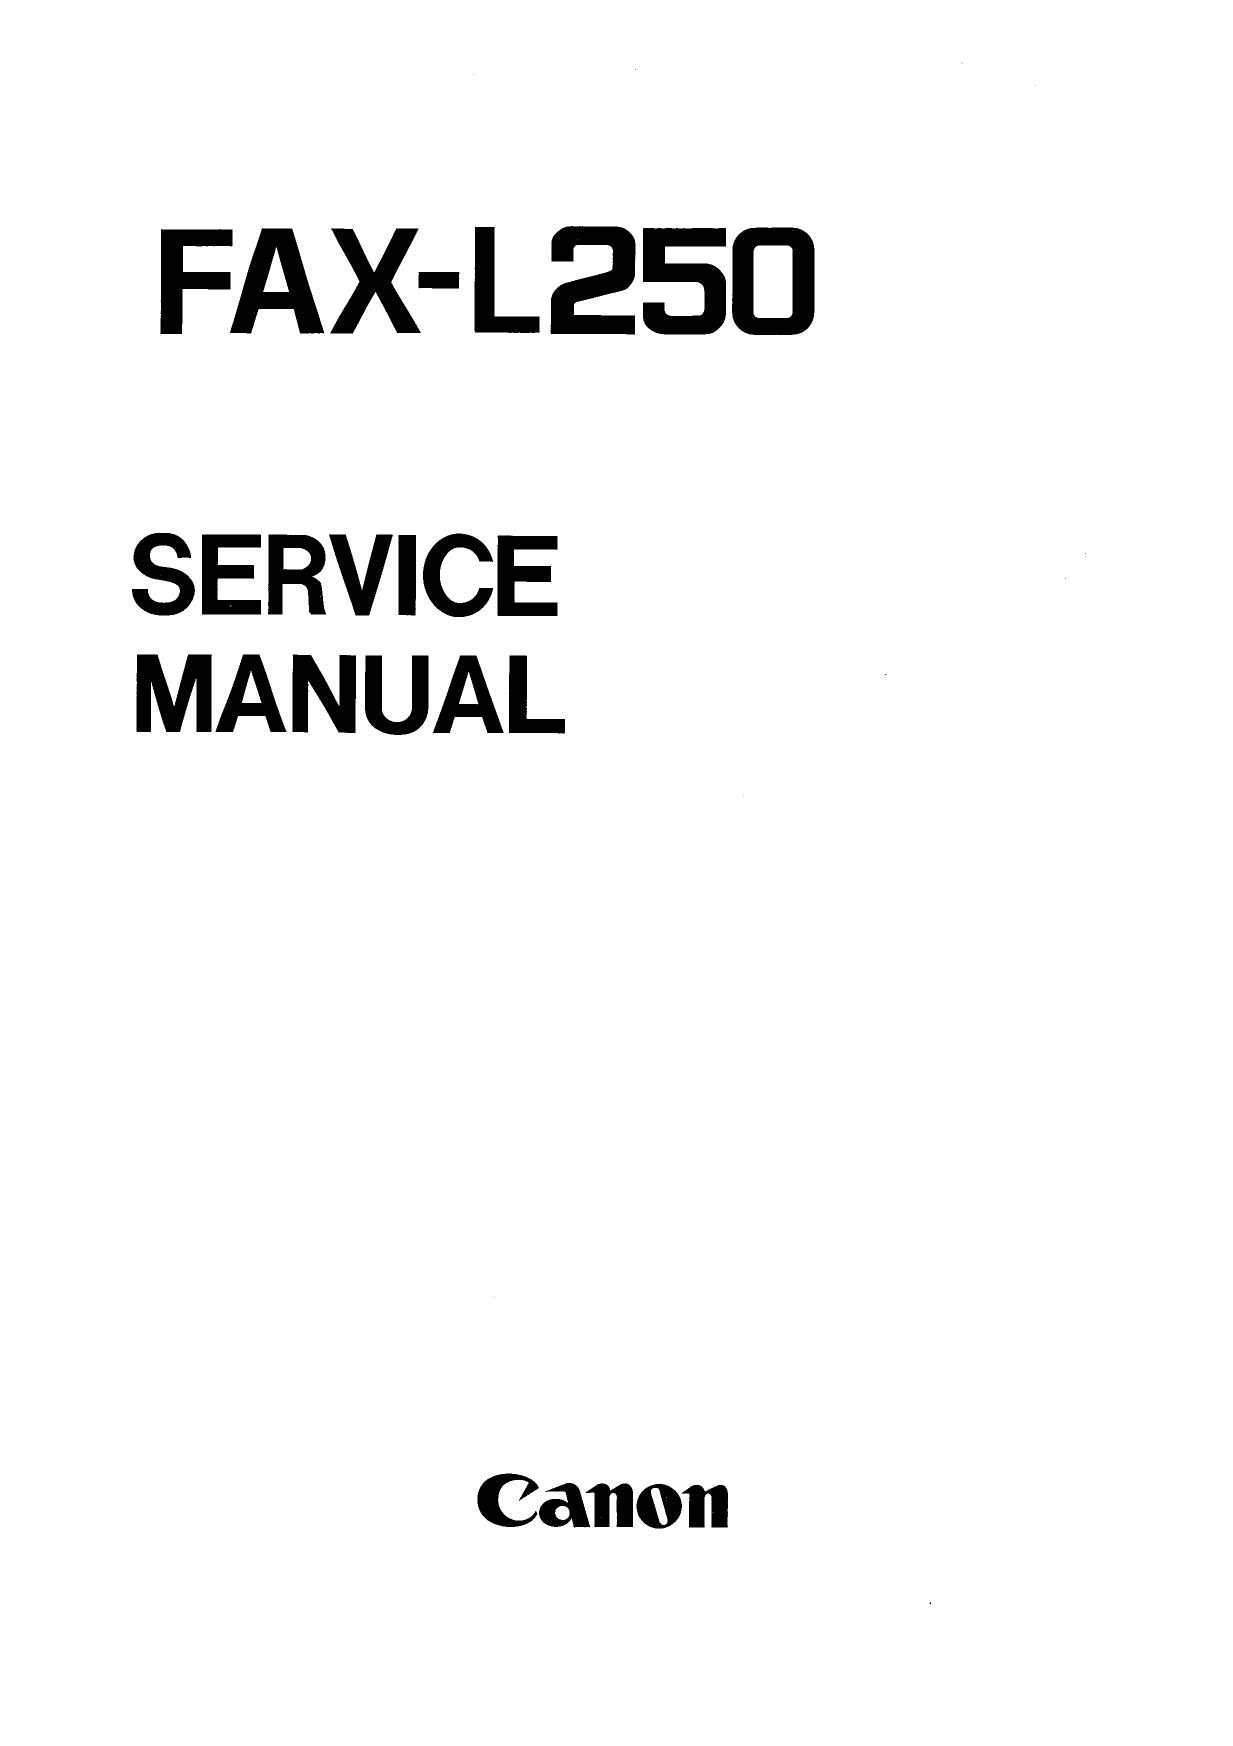 Canon FAX L250 Parts and Service Manual